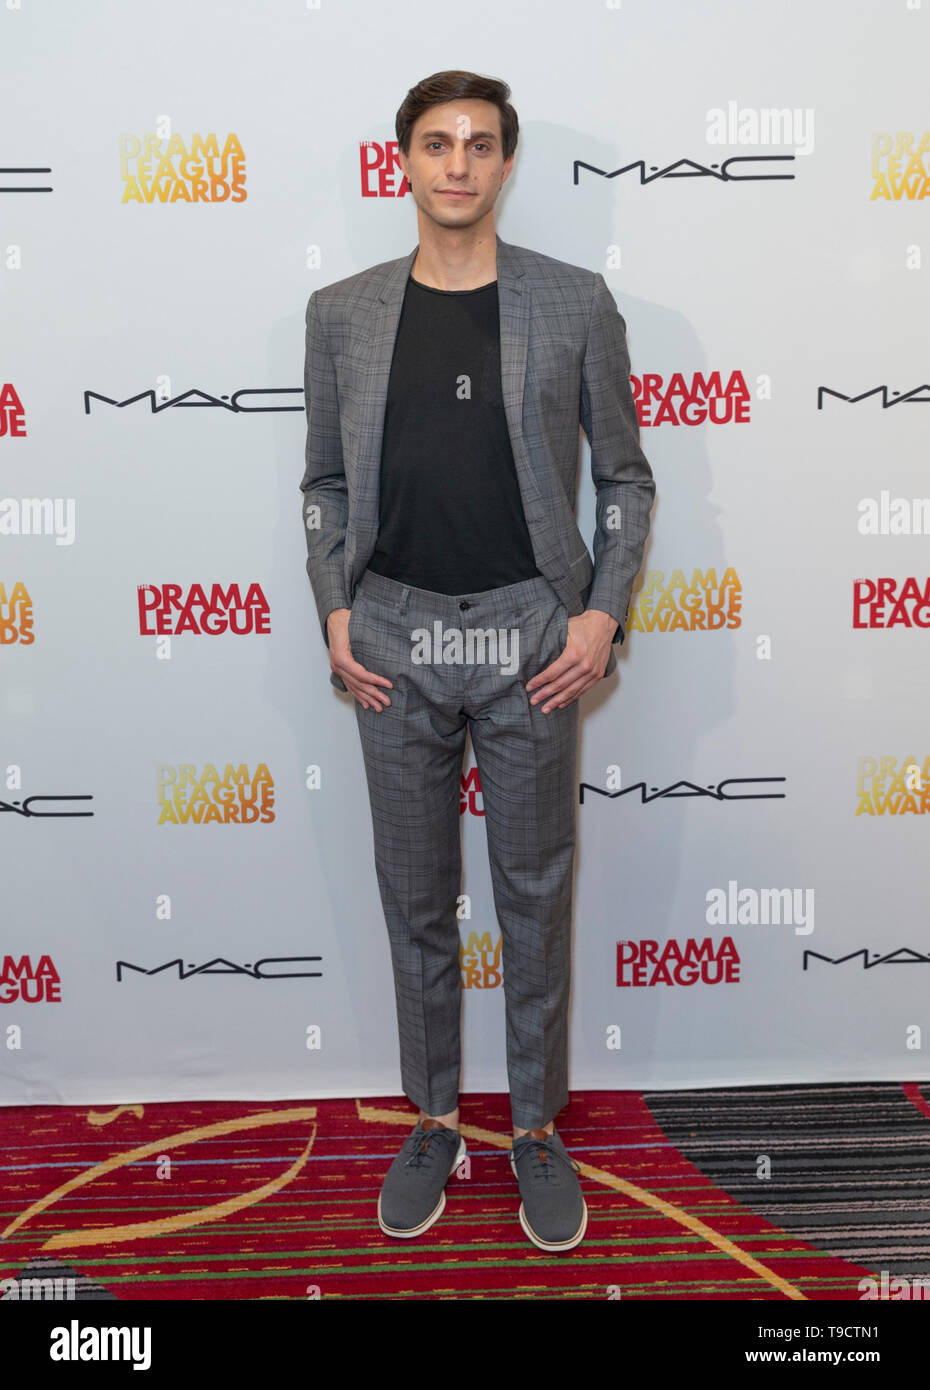 New York, NY - May 17, 2019: Gideon Glick attends 85th Annual Drama League Awards at Marriot Marquis Times Square - Stock Image